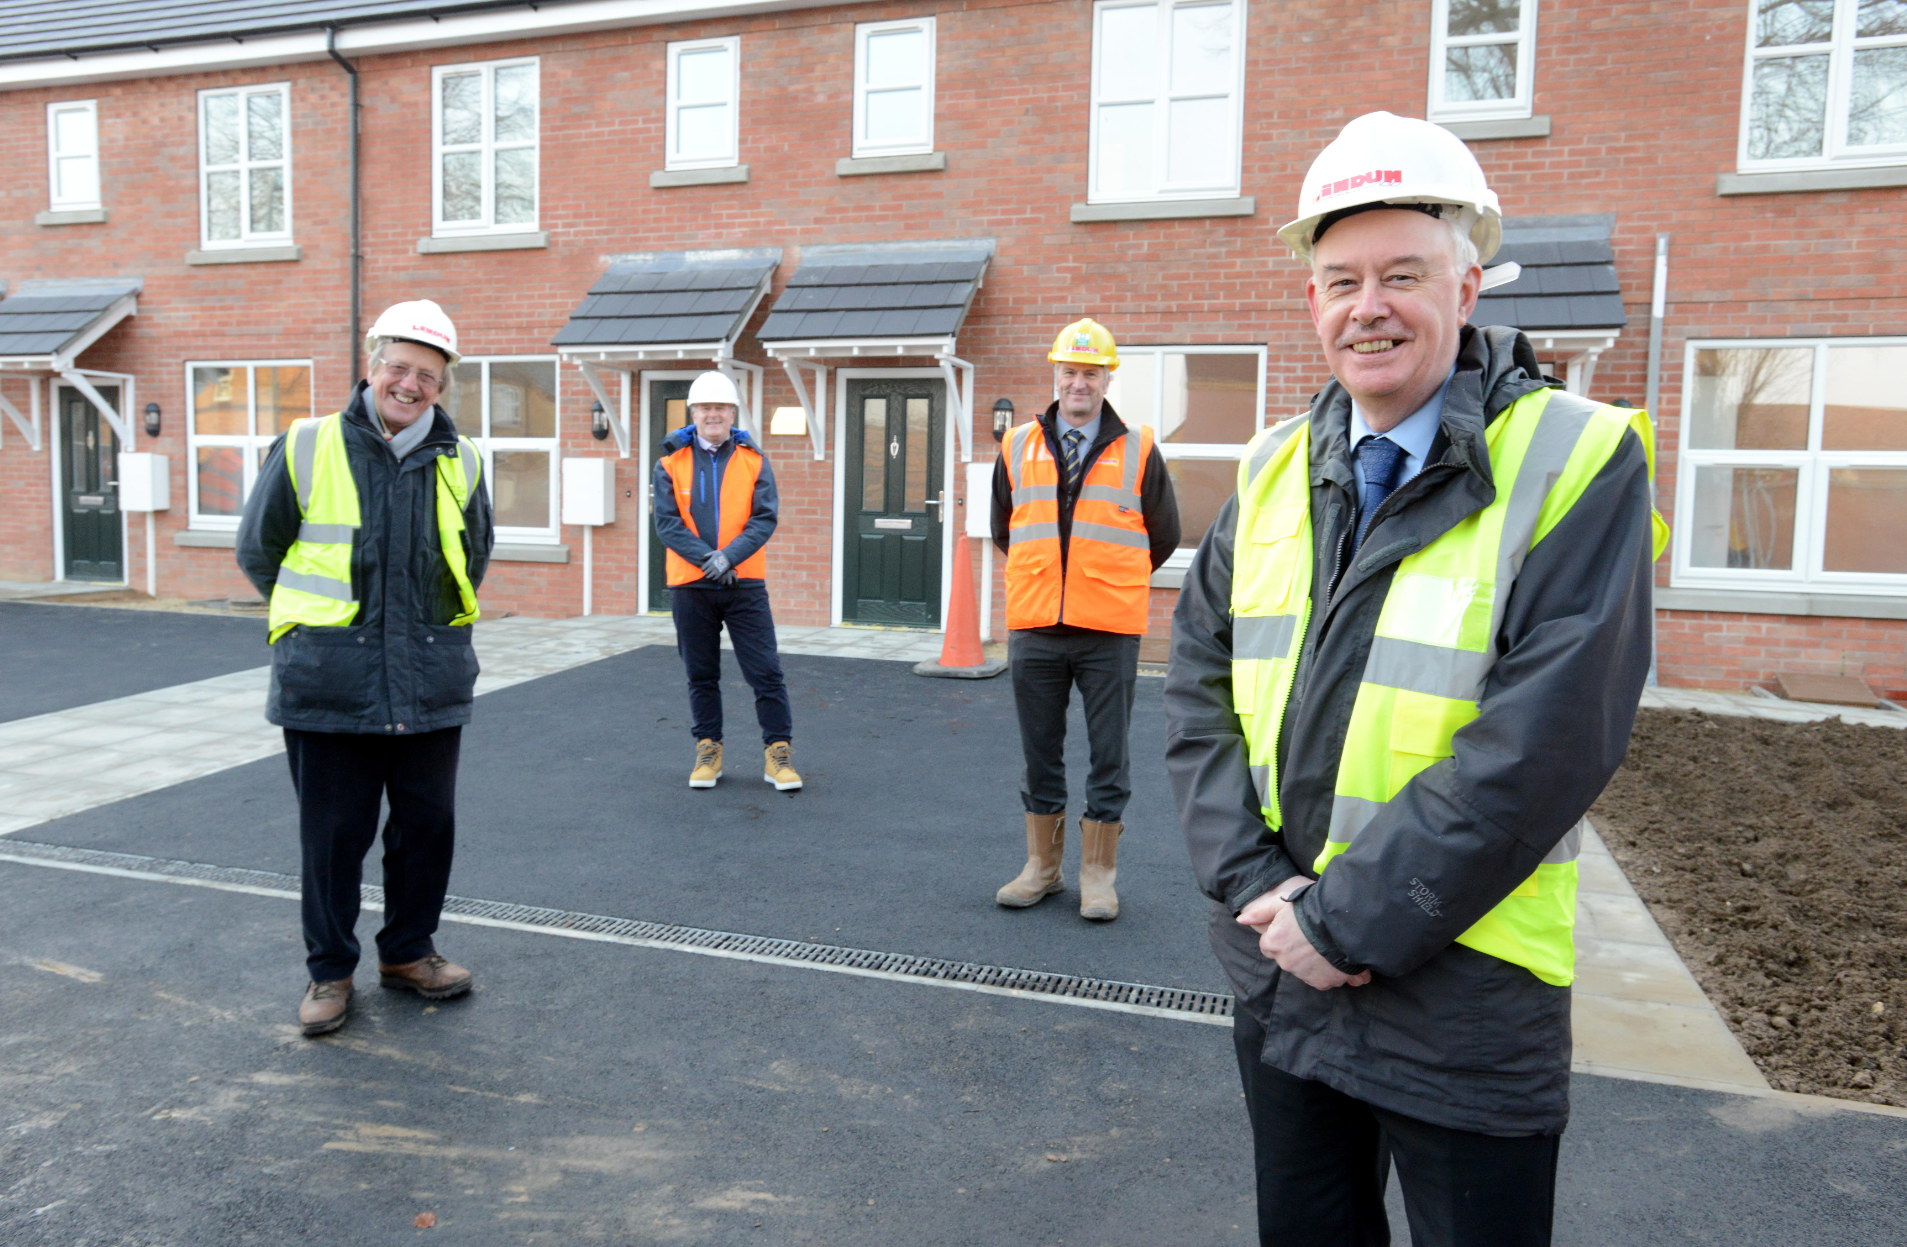 New homes built on site of derelict community building